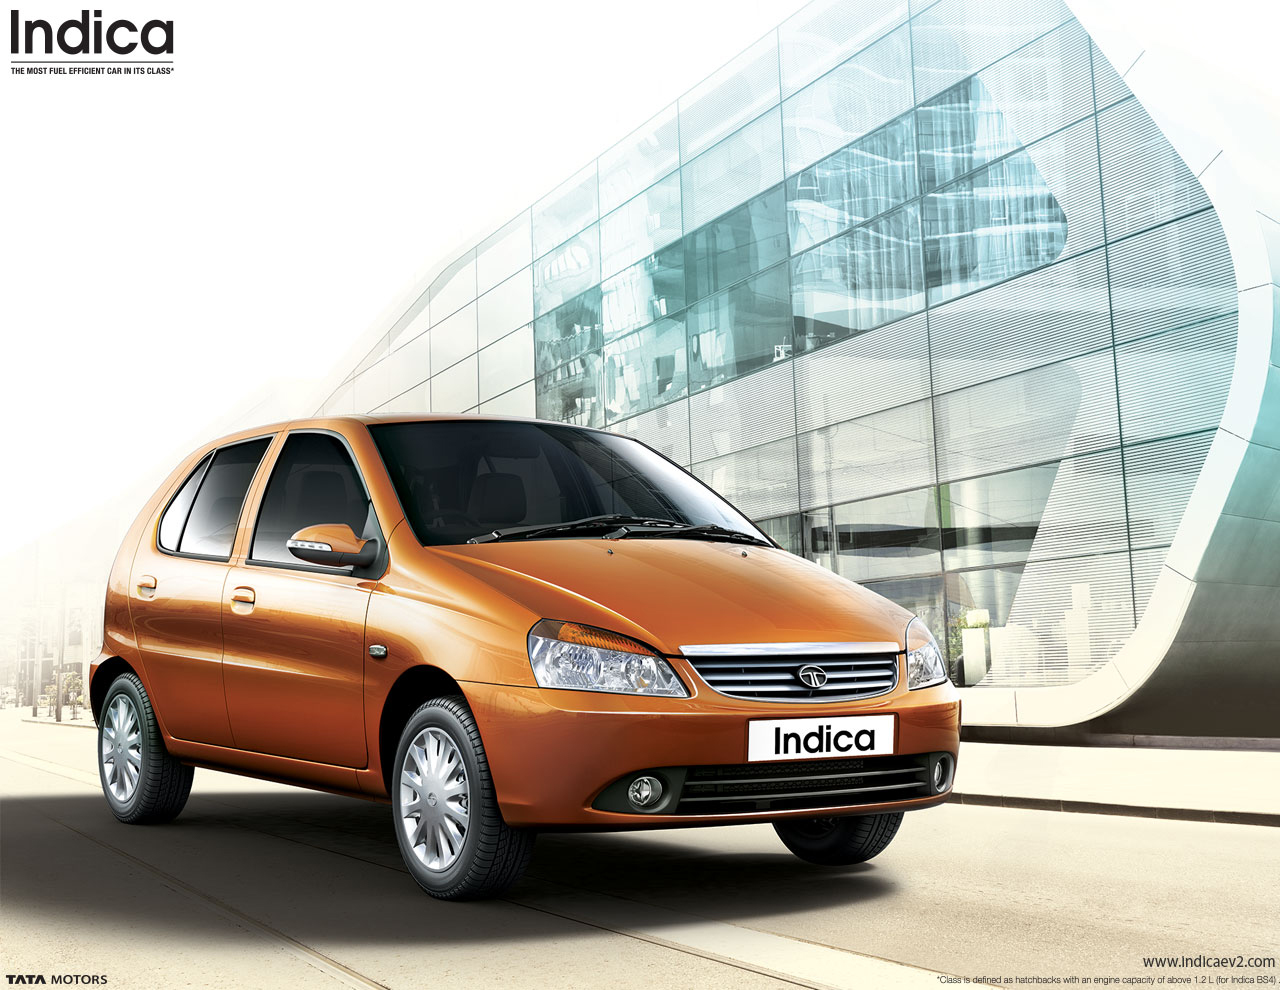 Tata Indica eV2 Specifications, Price, Mileage, Pics, Review